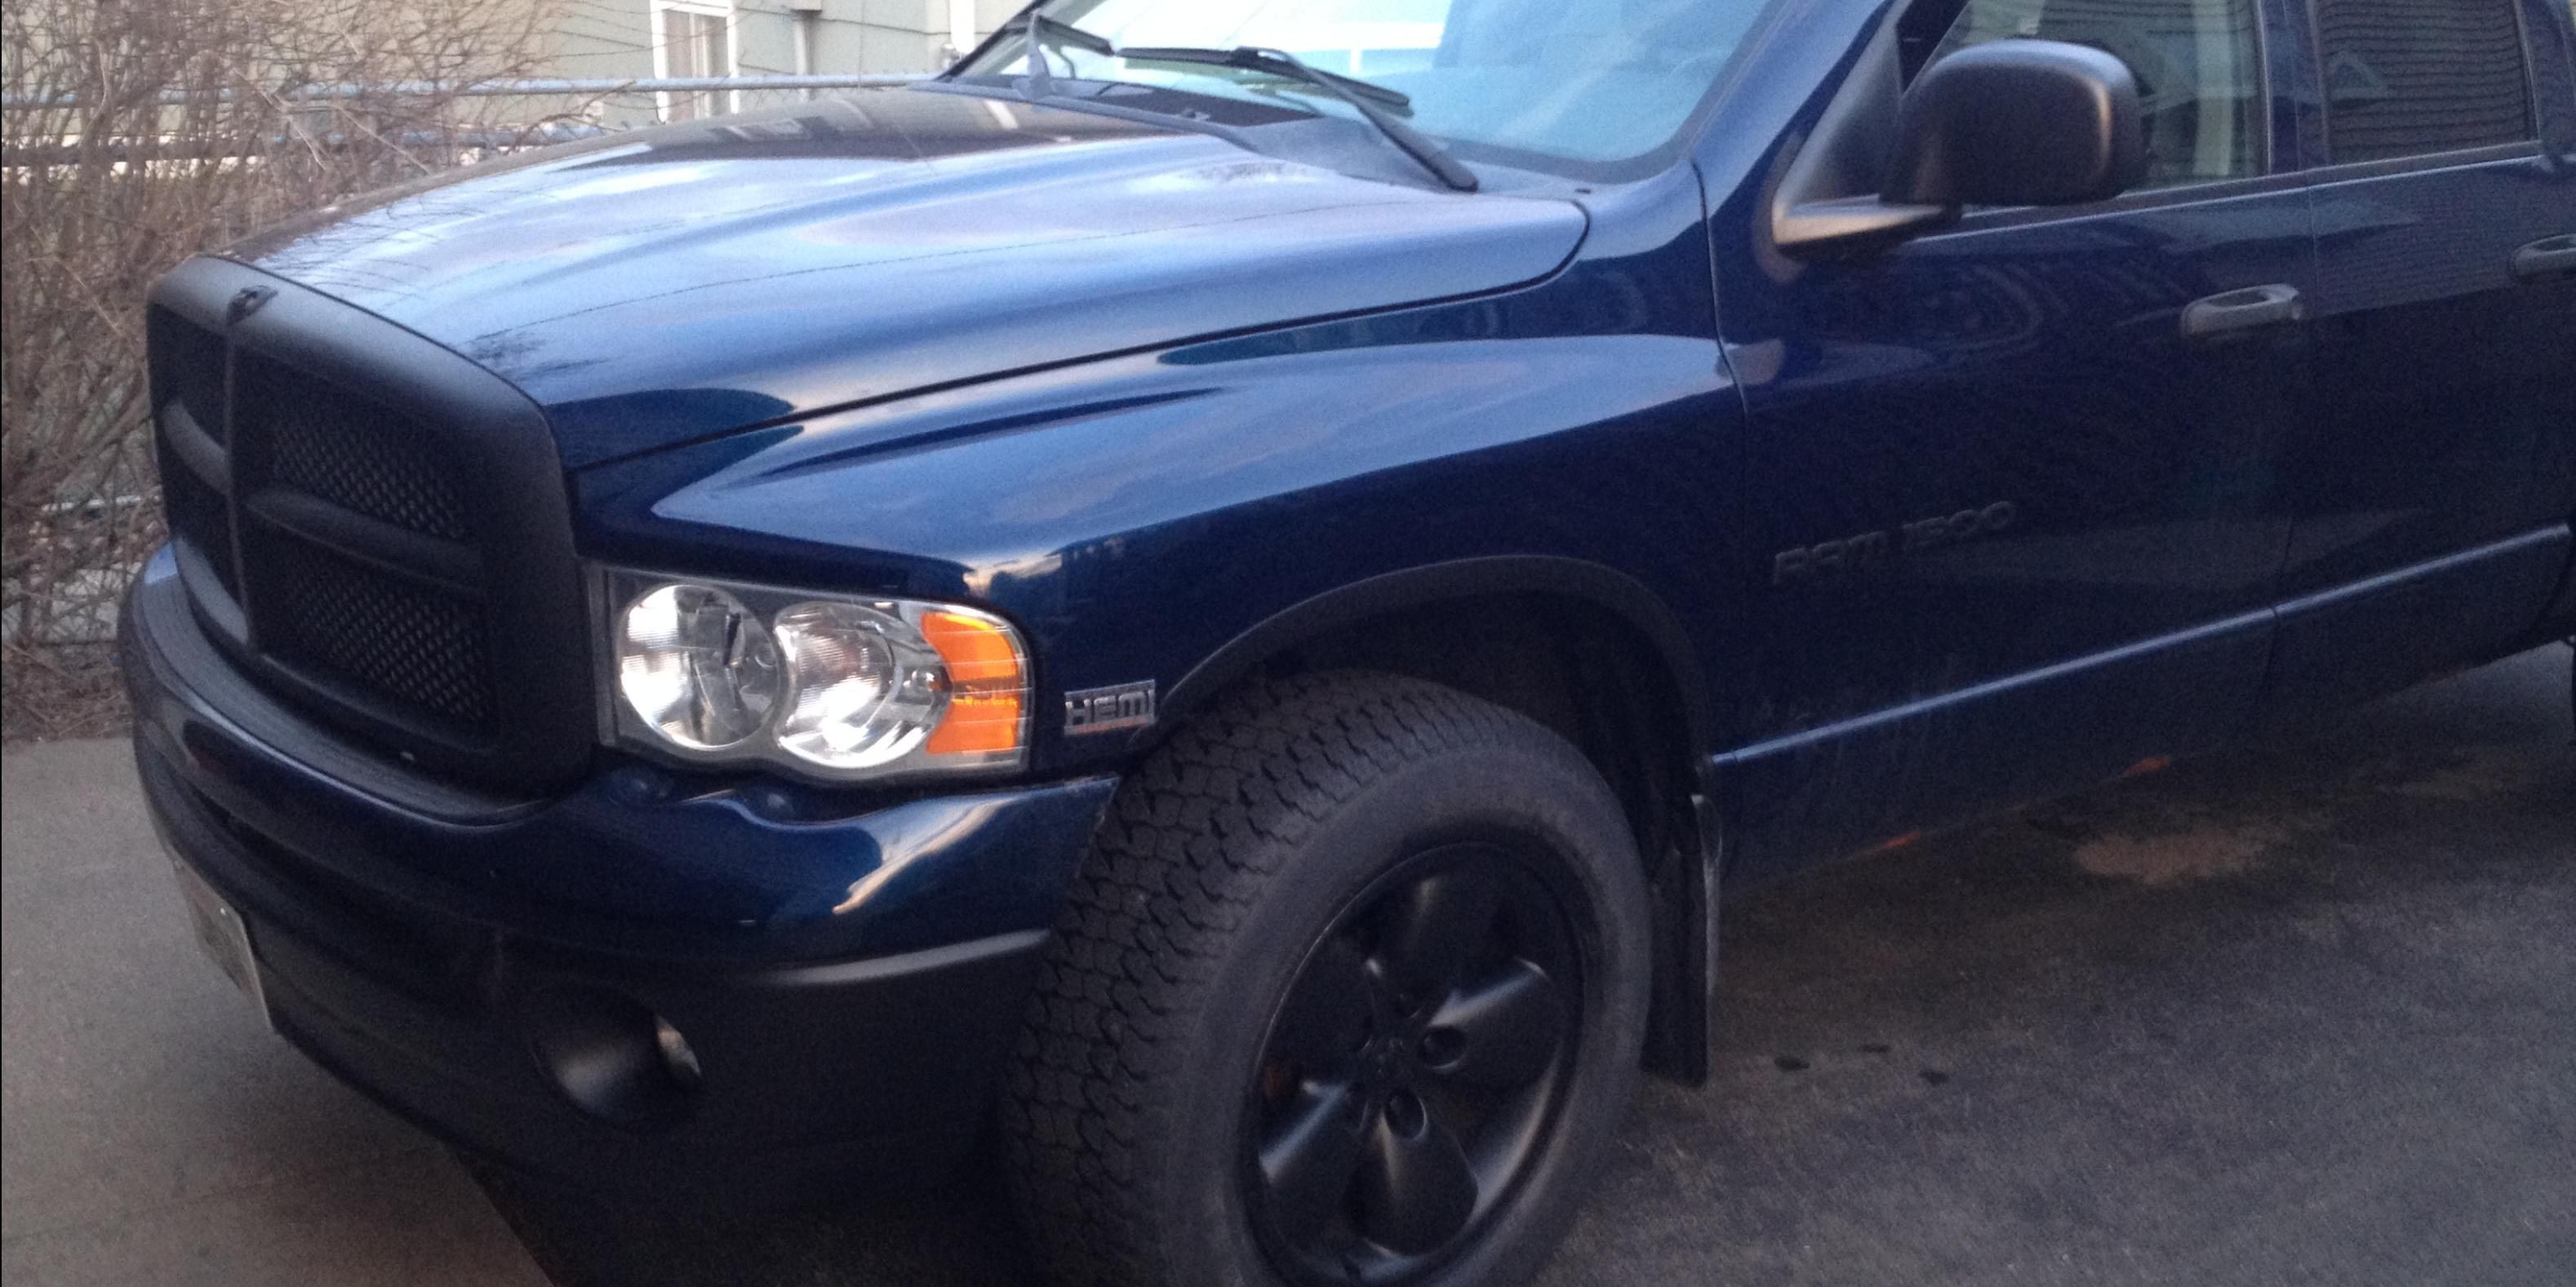 Un_ReaL's 2005 Dodge Ram-1500-Quad-Cab